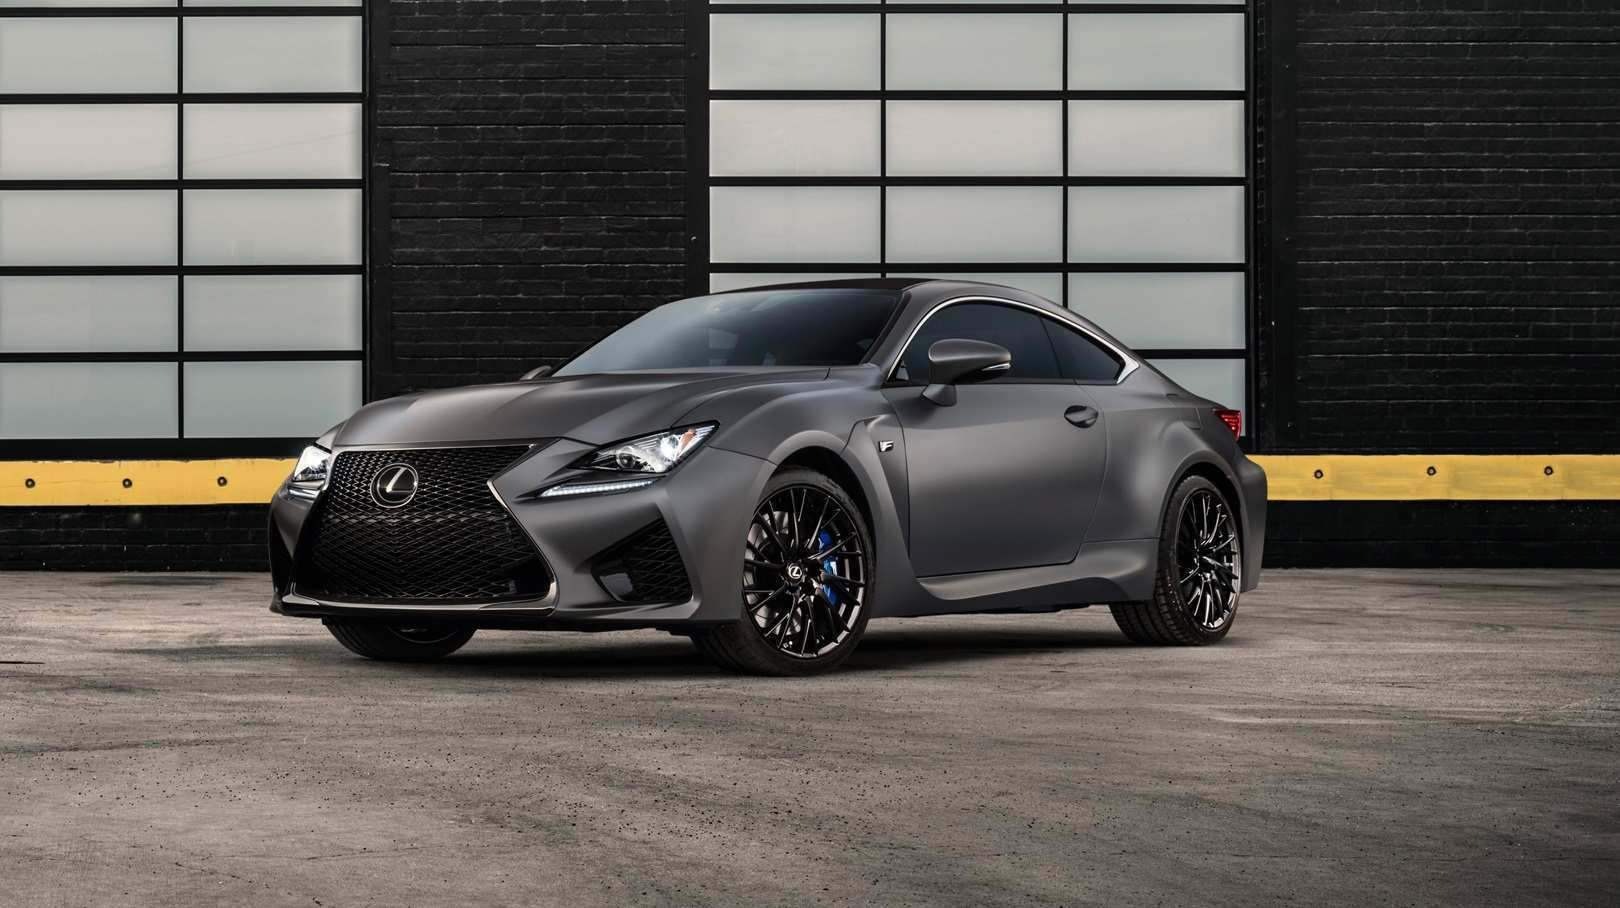 37 Concept of Lexus Rcf 2019 Prices for Lexus Rcf 2019